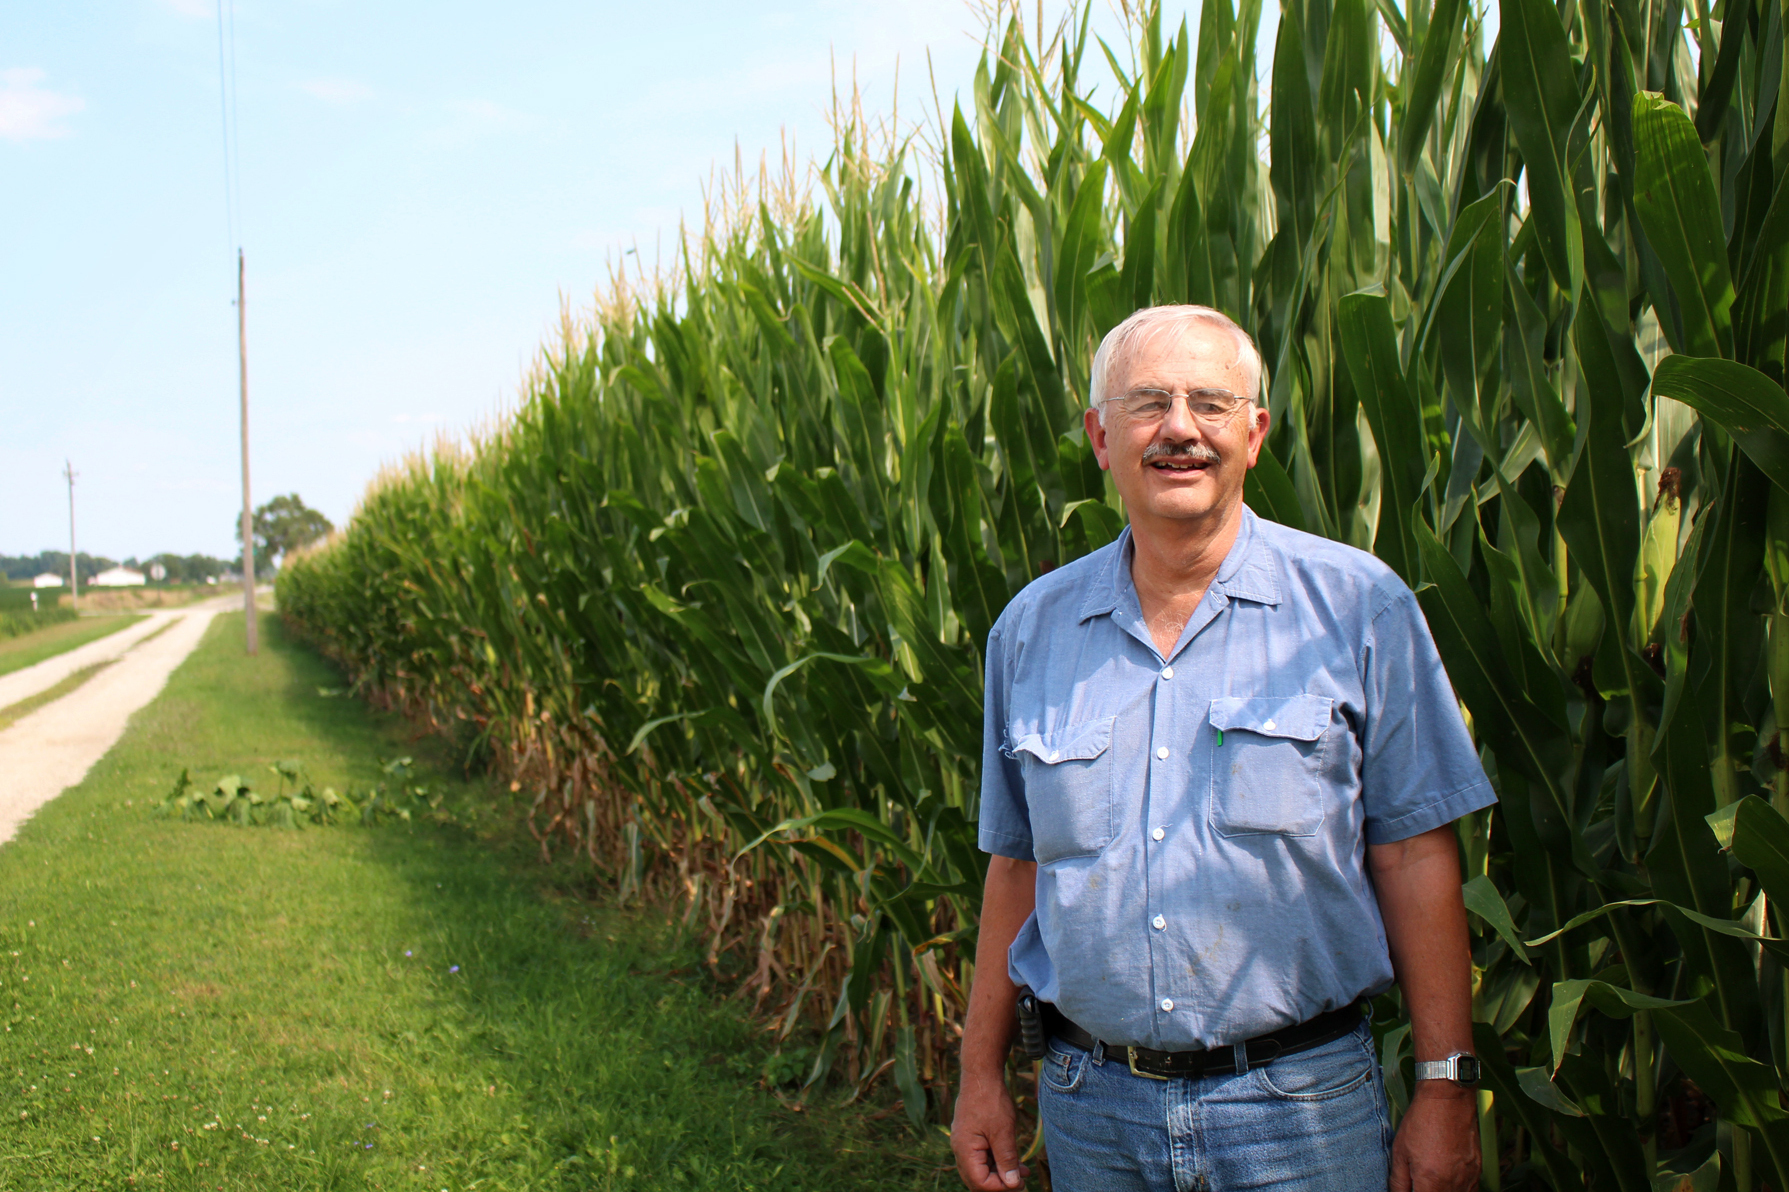 Lake Erie's Toxic Bloom Has Ohio Farmers On The Defensive